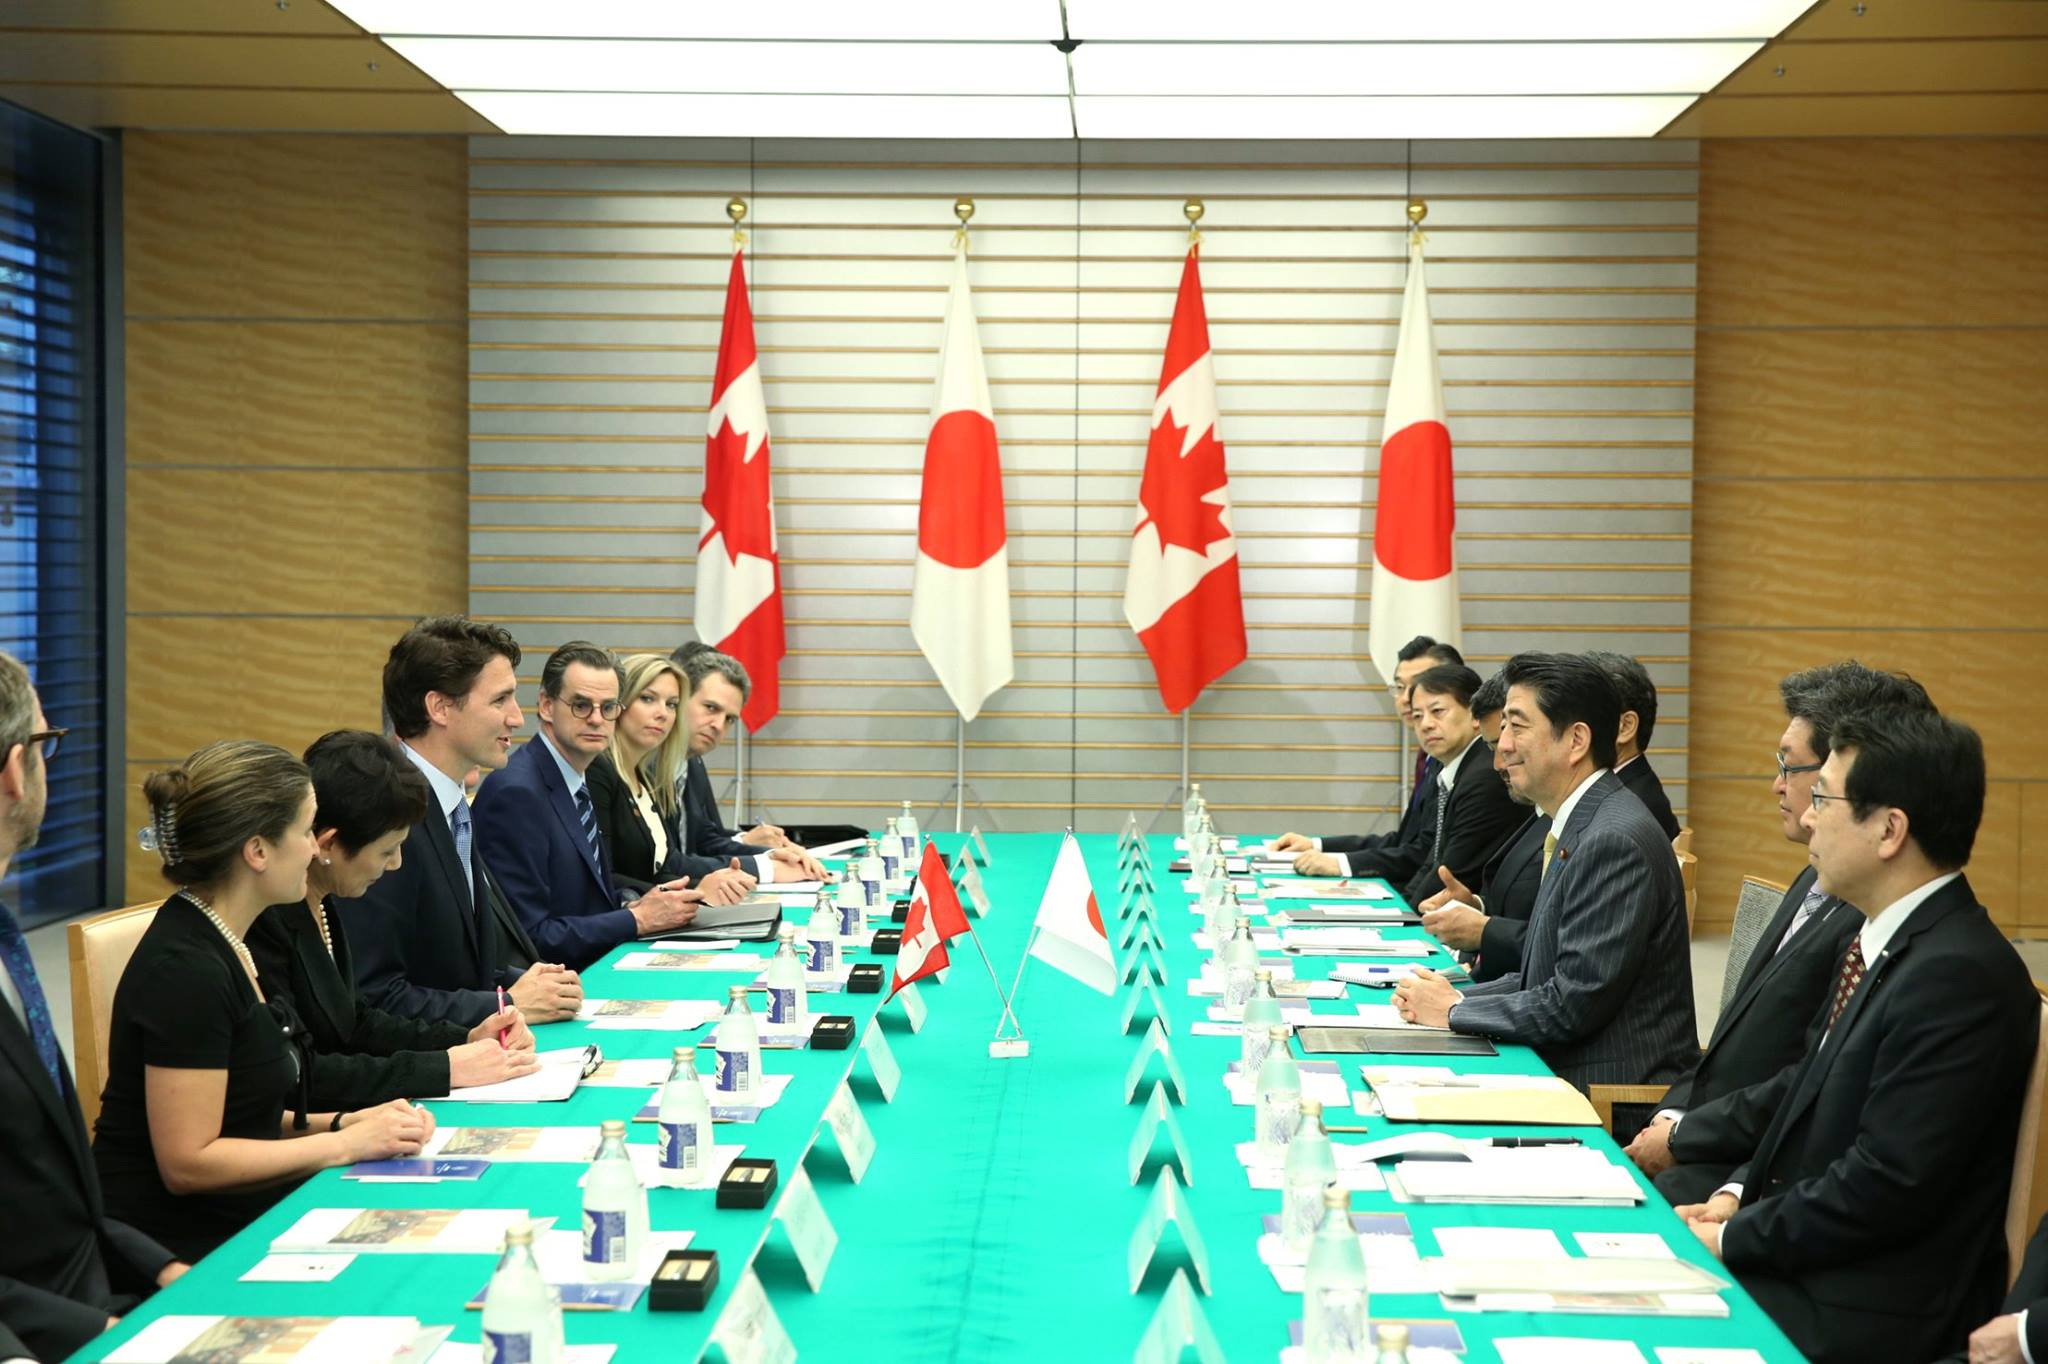 Prime Minister Justin Trudeau meets with his counterpart, Japanese Prime Minister Shinzo Abe. (Photo: Justin Trudeau/Facebook)